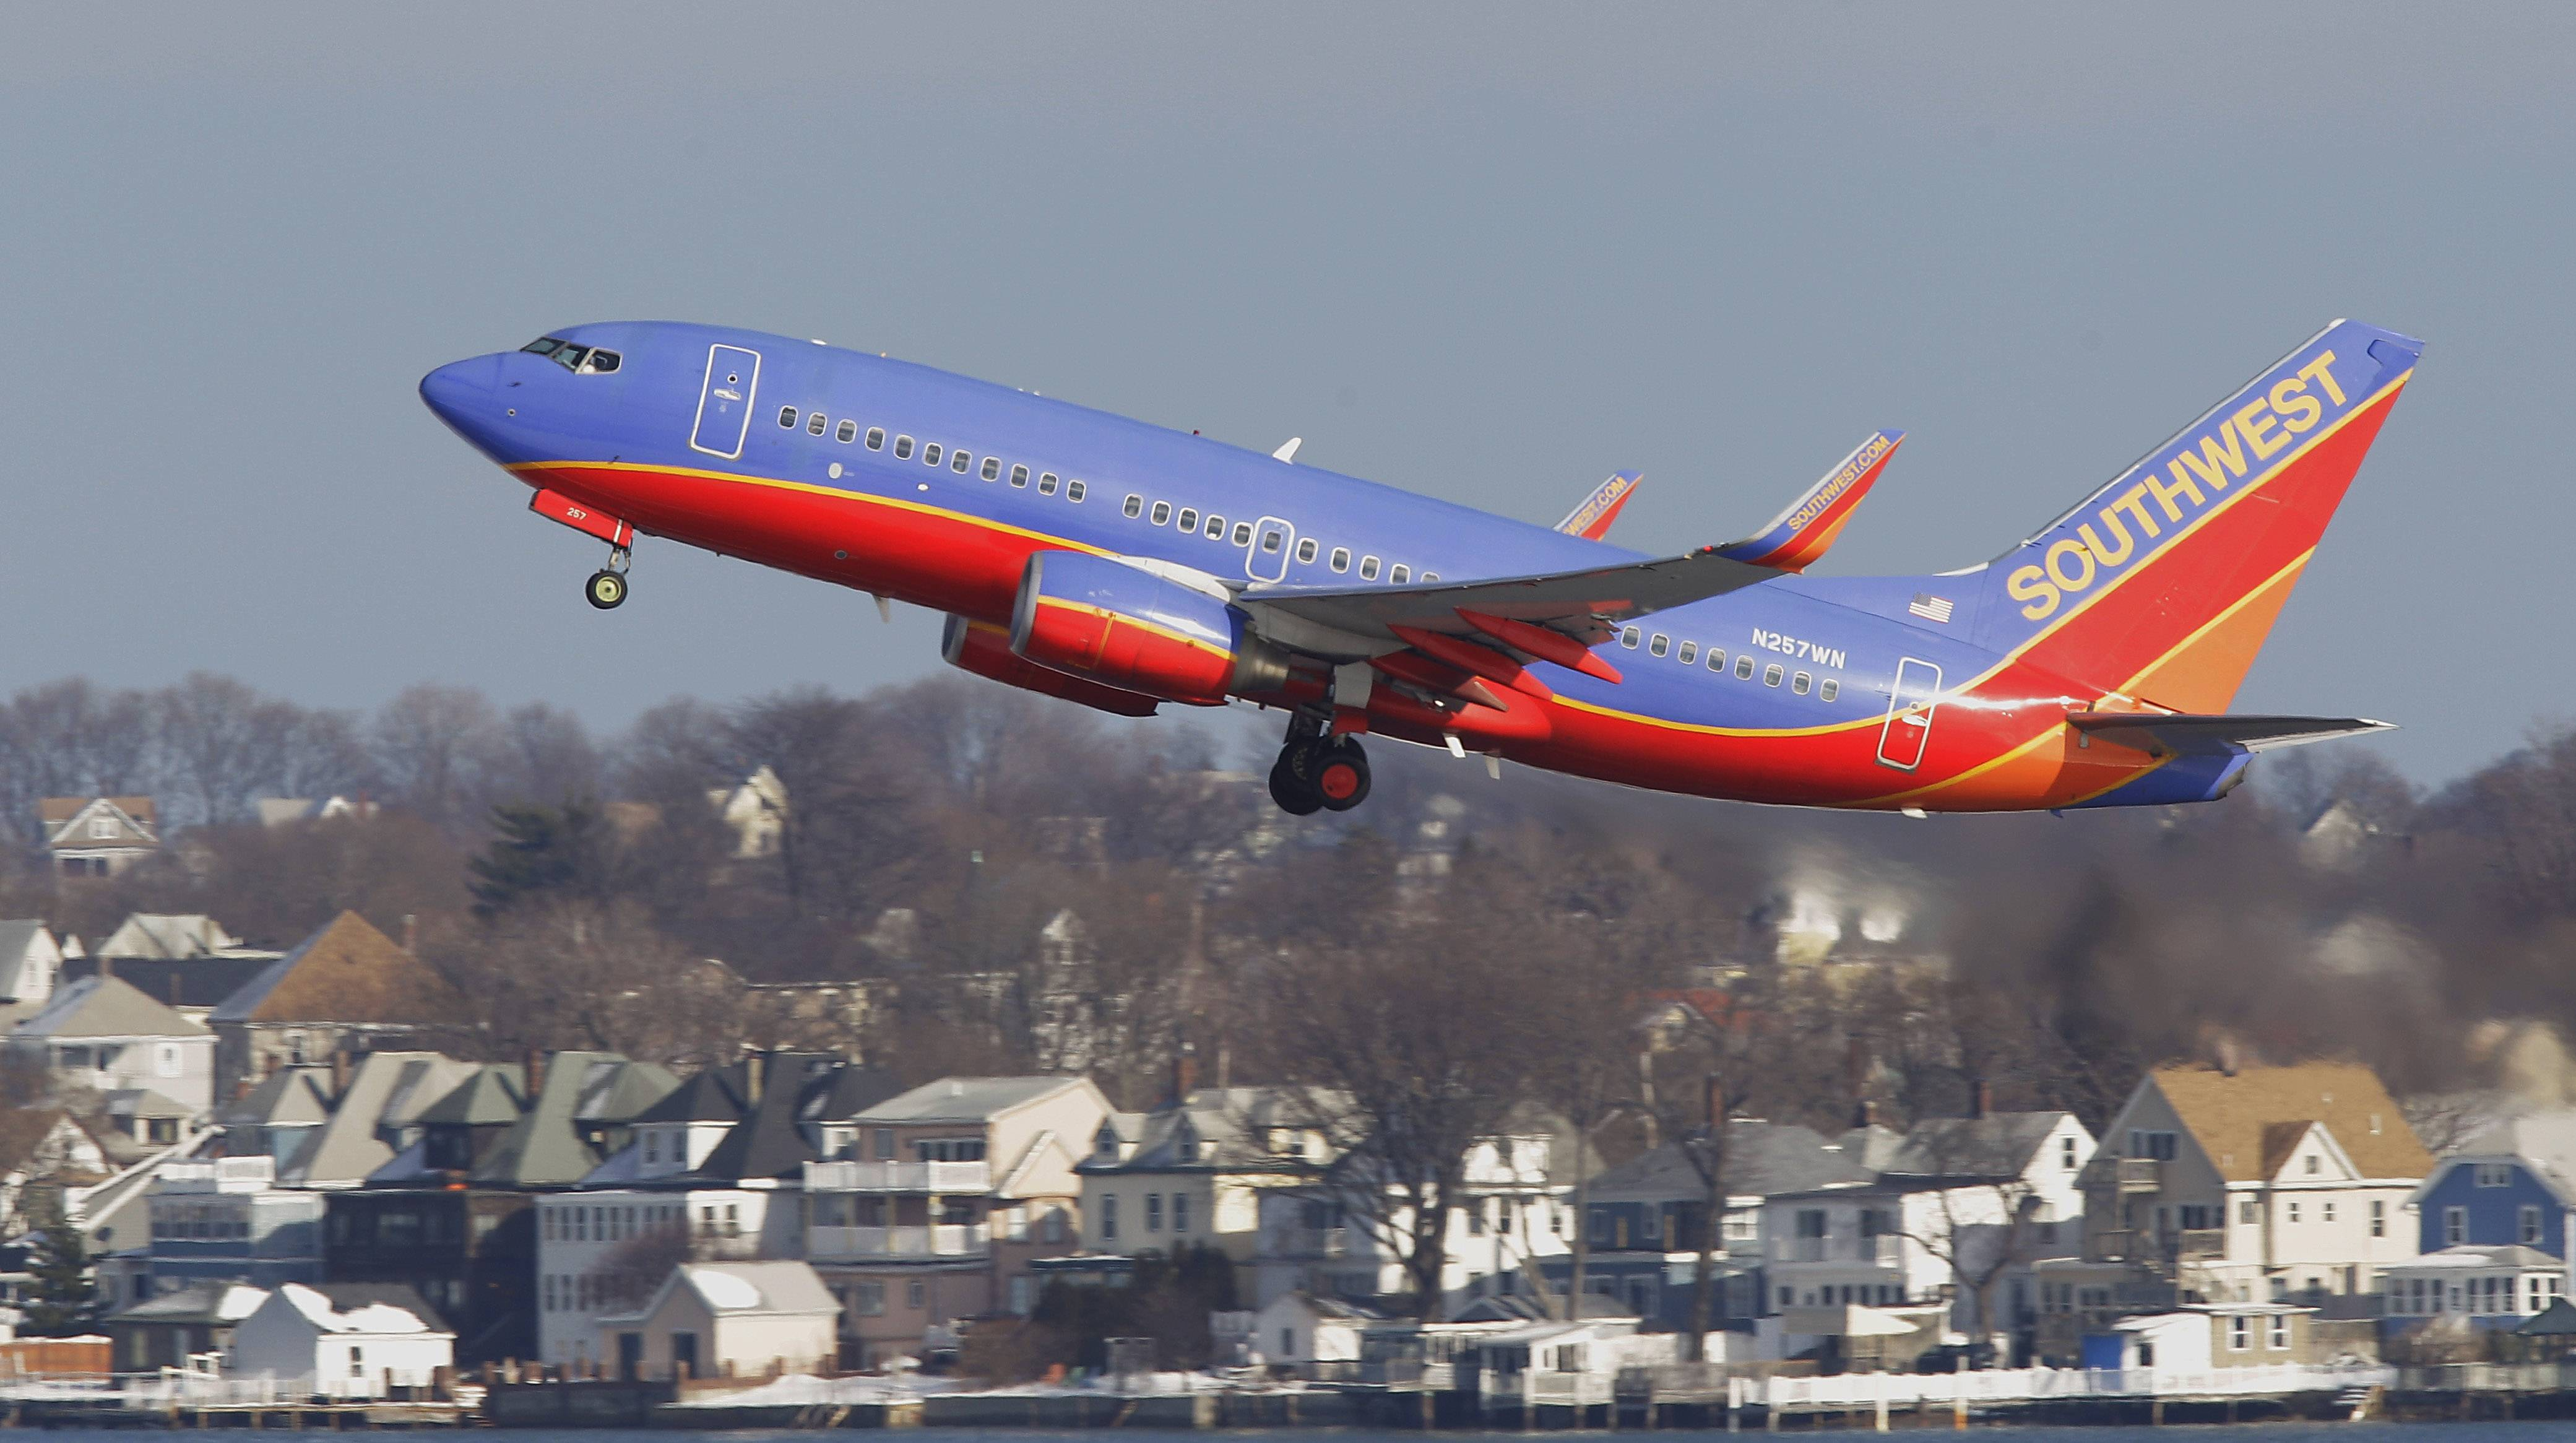 Southwest Airlines Co. has joined a sweeping increase of $10 in the price of many domestic round-trip airfares, citing the need to offset high fuel prices.